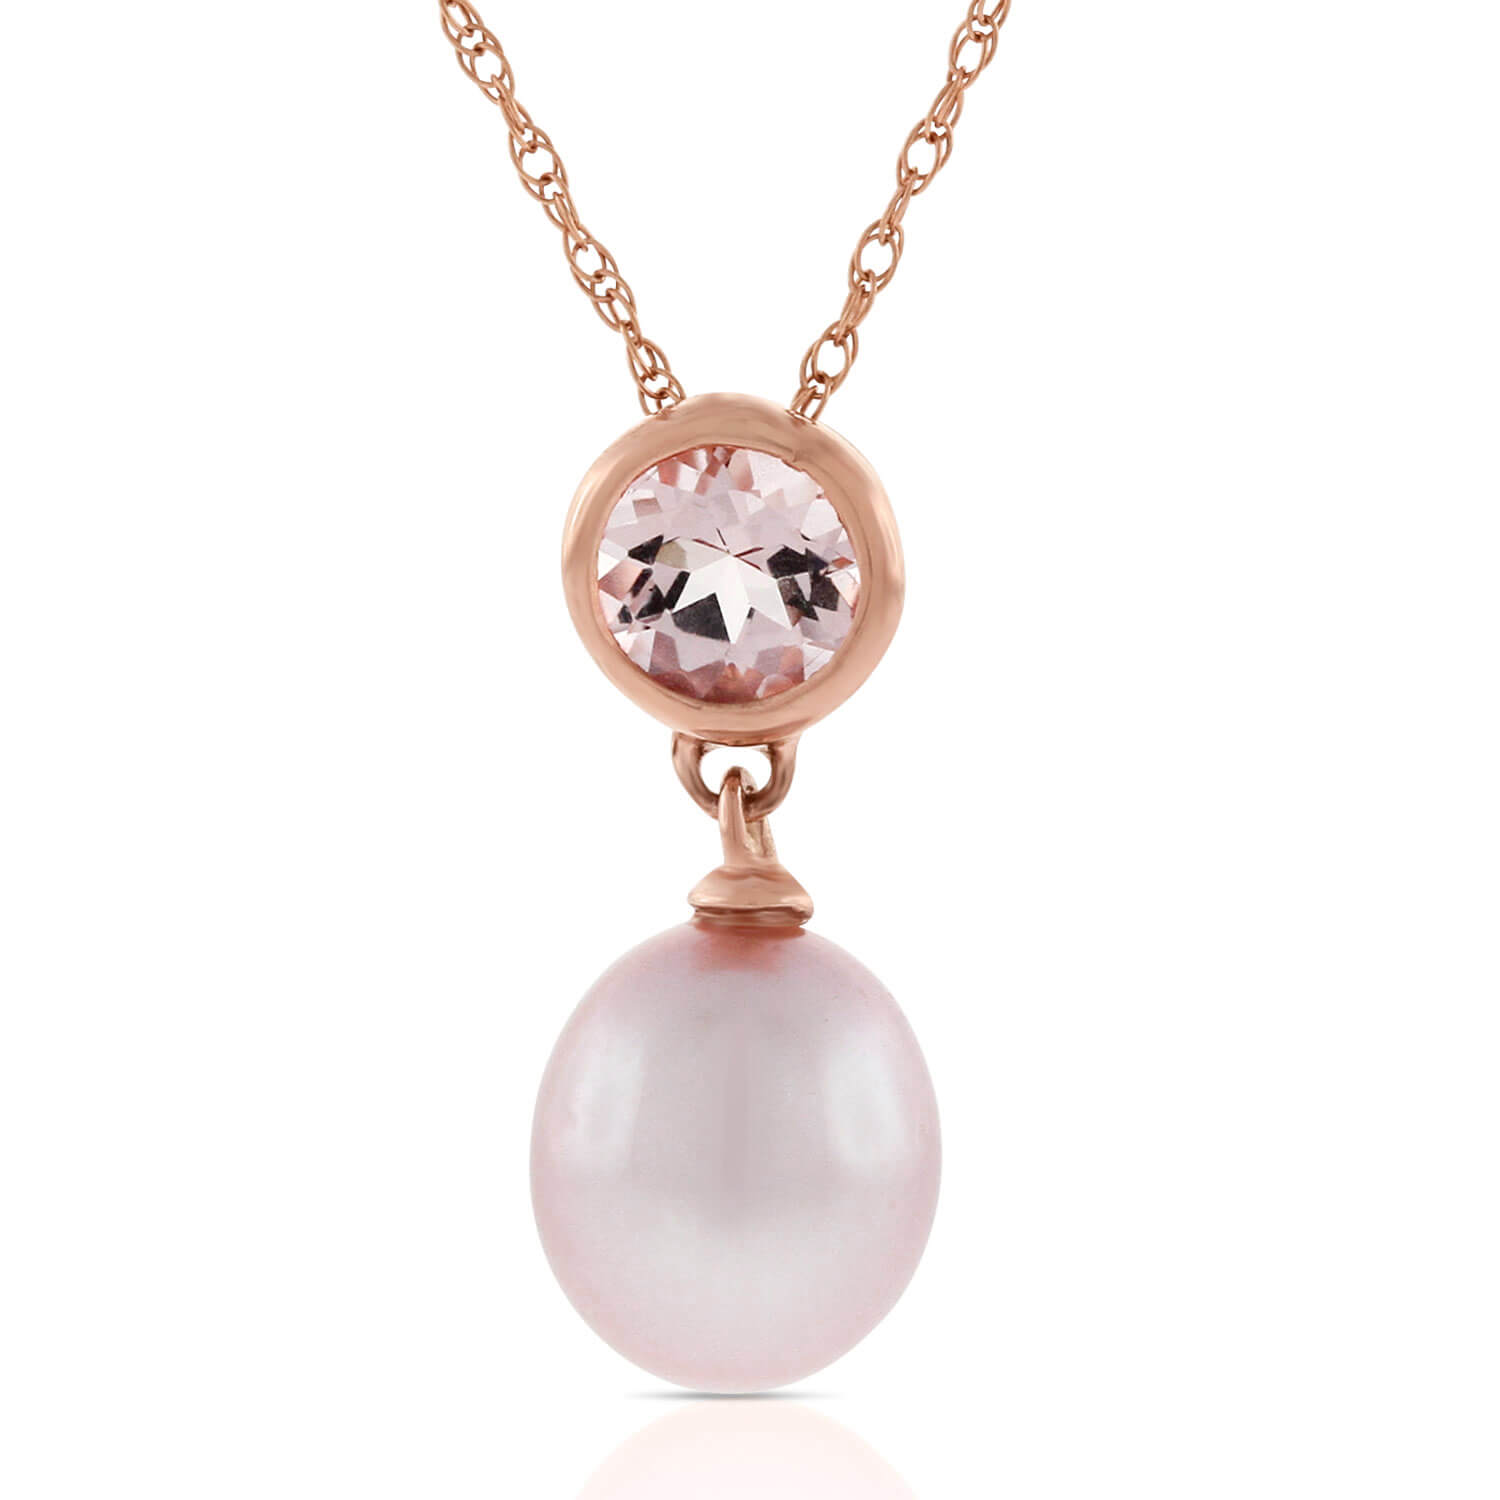 Rose gold freshwater cultured pearl morganite pendant 14k ben rose gold freshwater cultured pearl morganite pendant 14k aloadofball Image collections